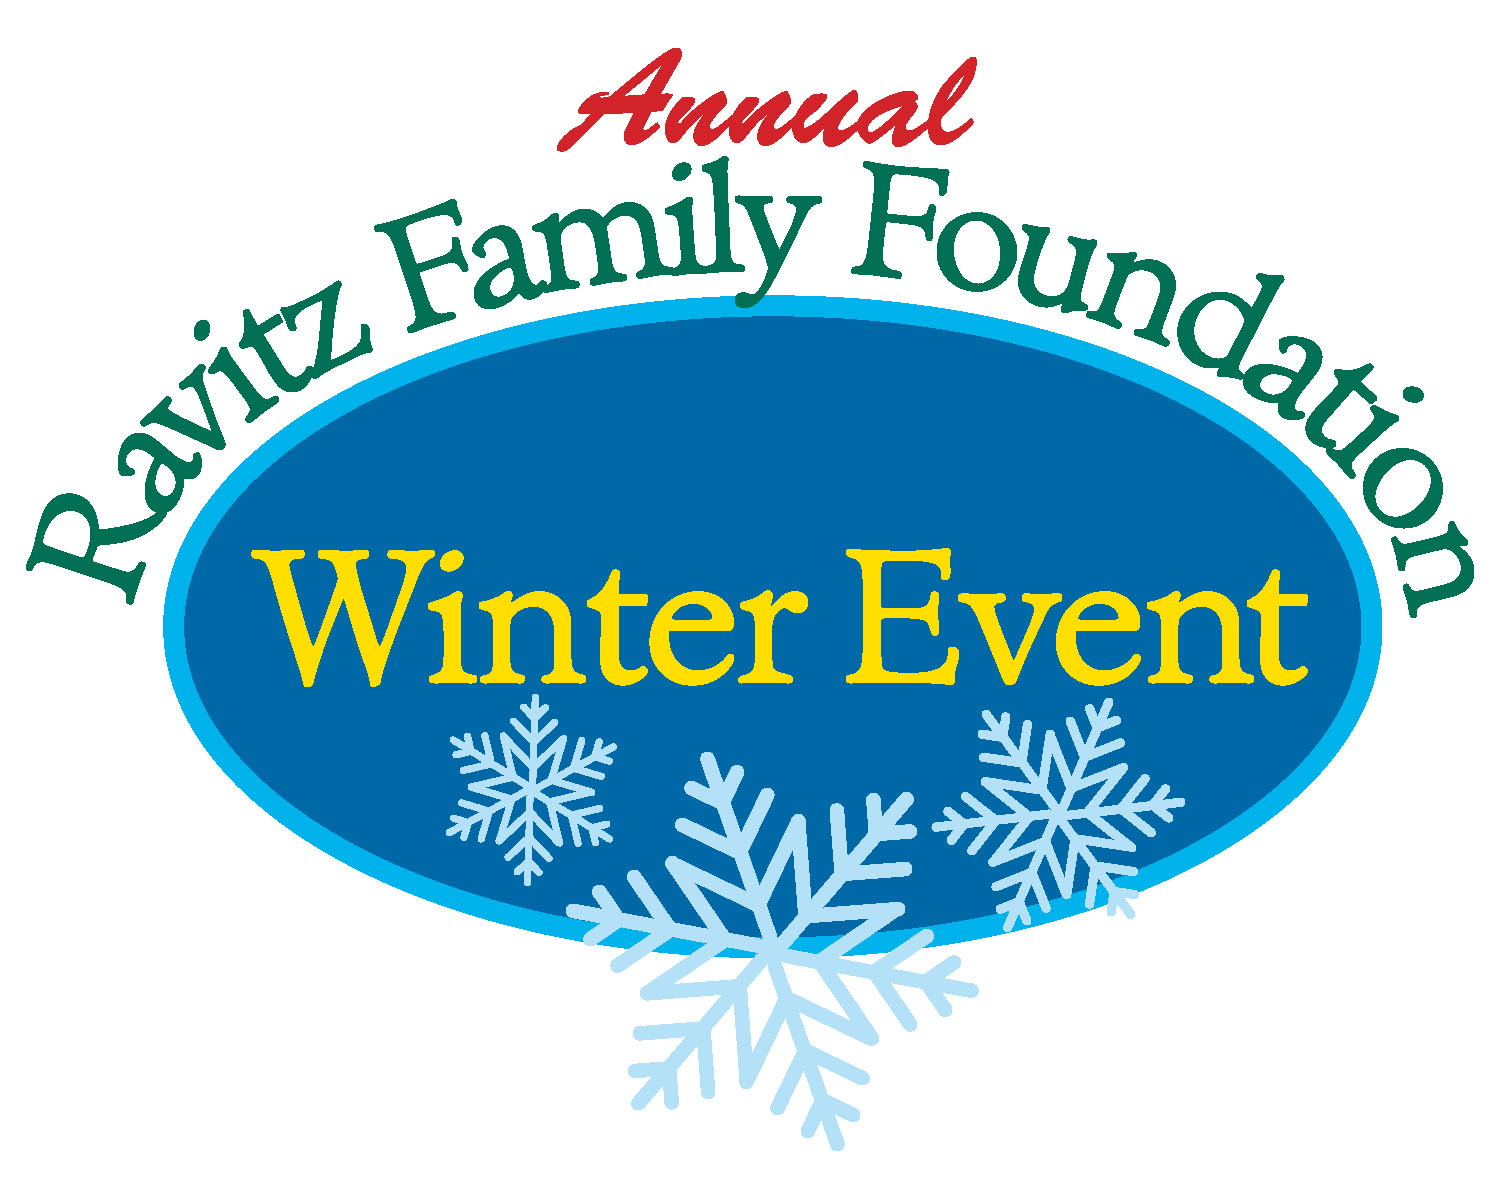 Ravitz Family Foundation Annual Winter Event 2018